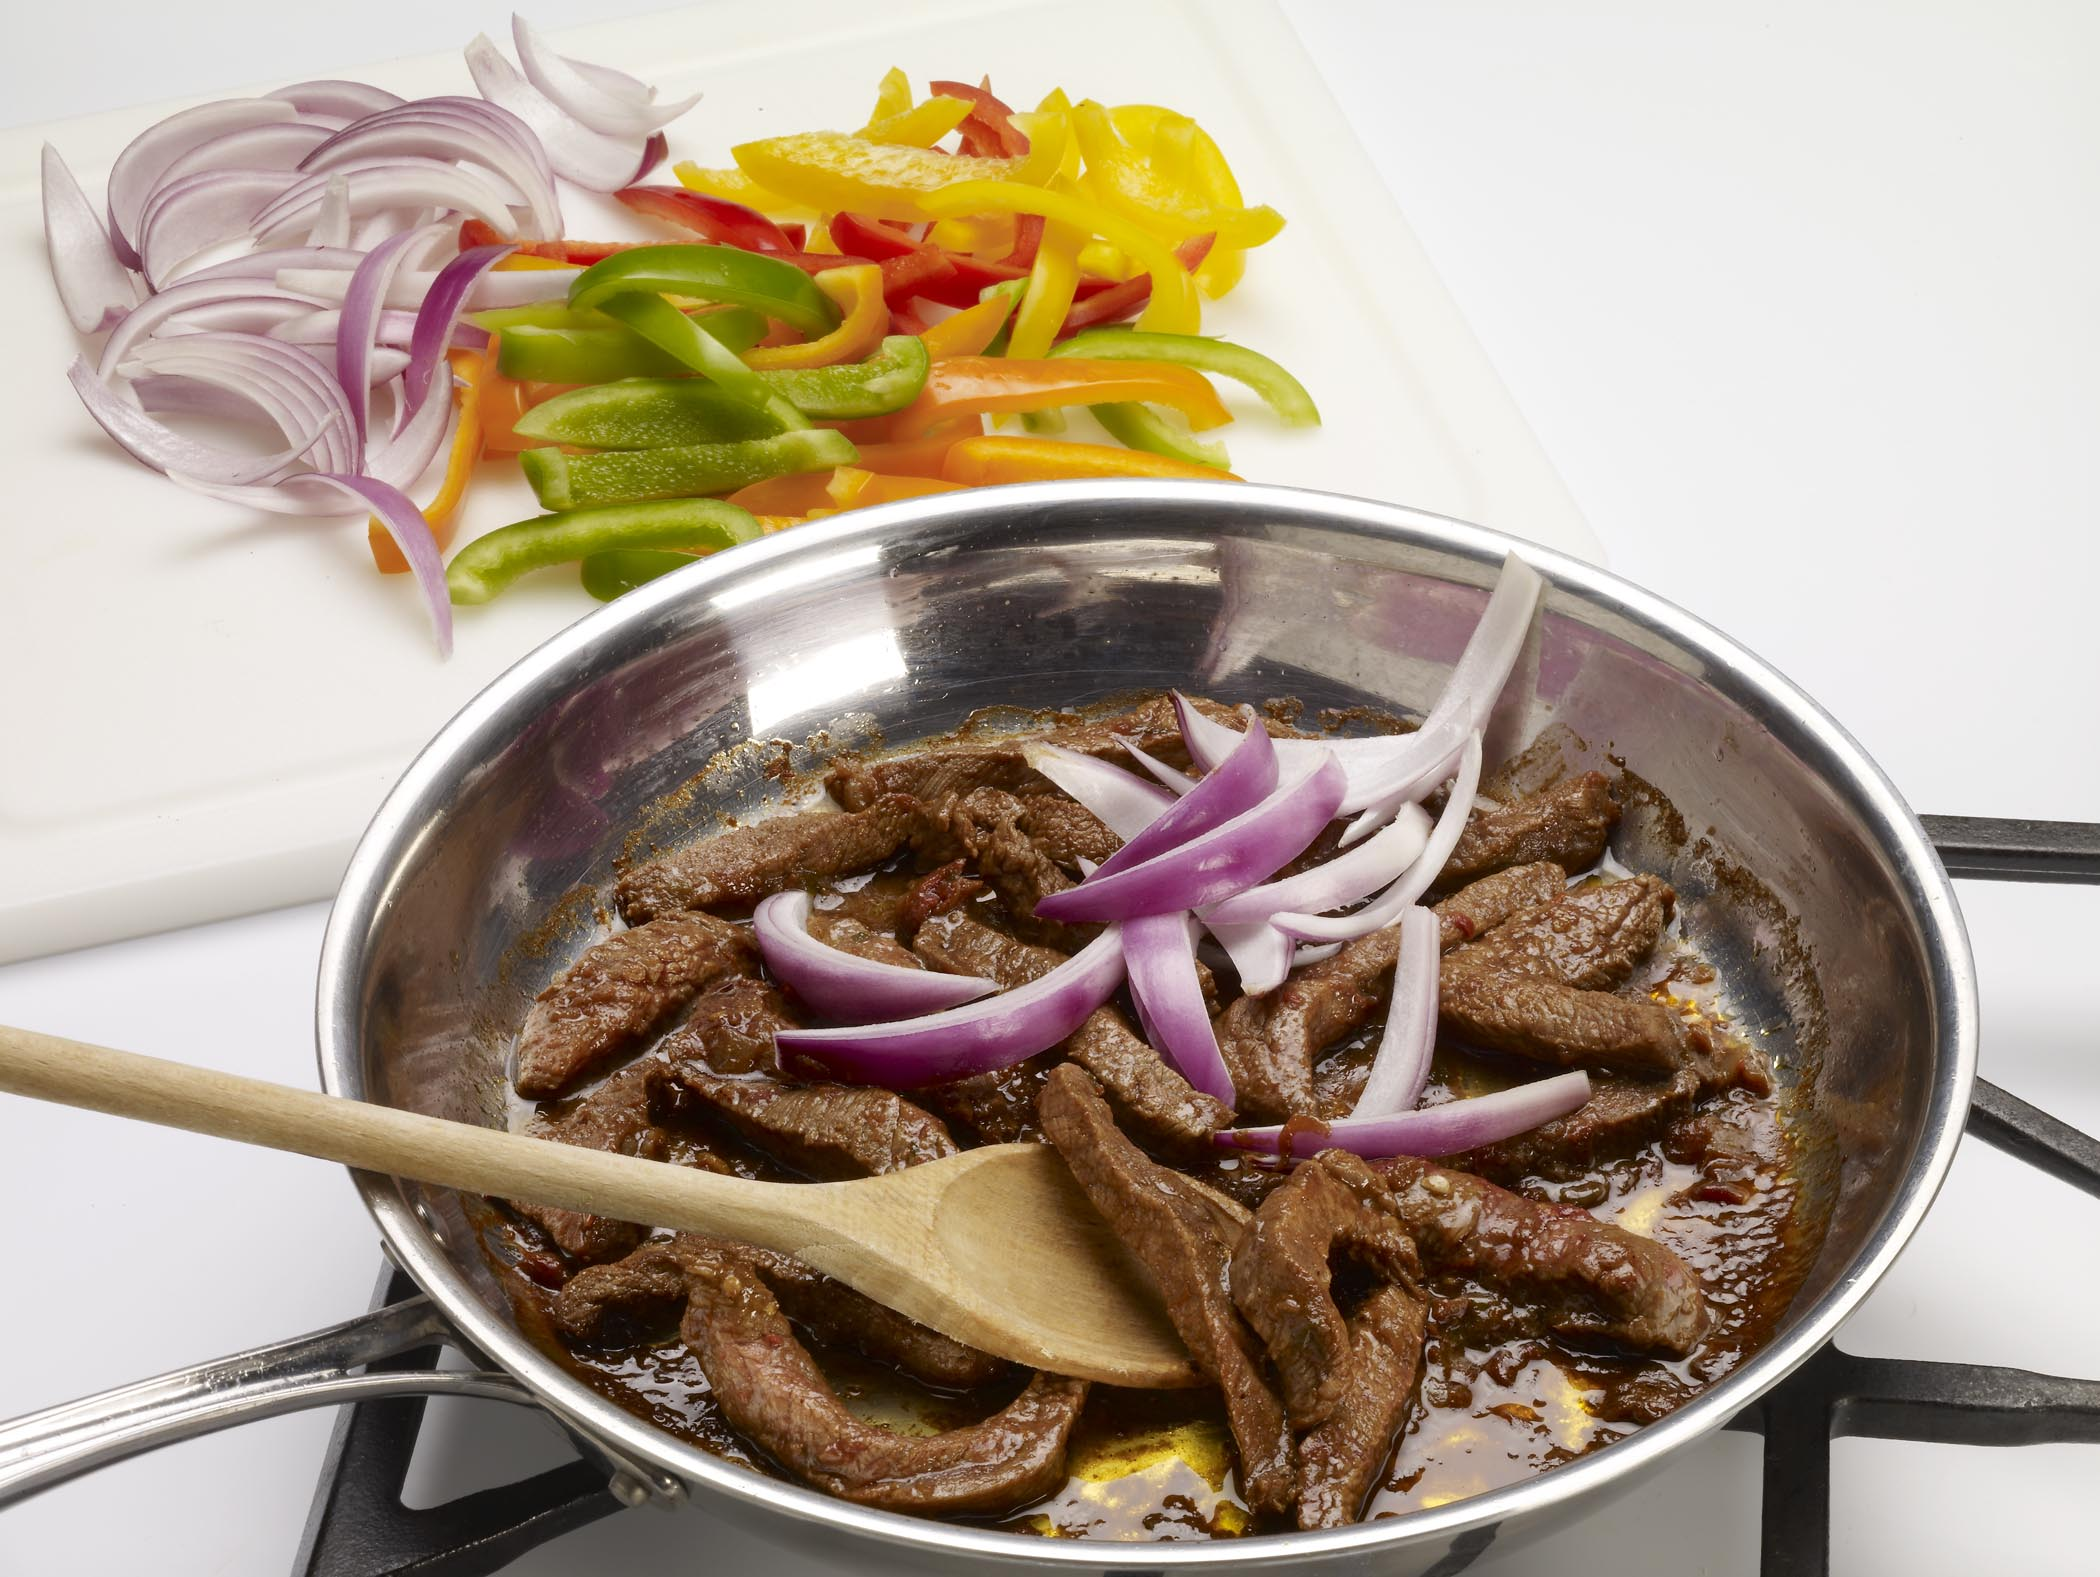 In a skillet, heat oil over medium-high heat.  Remove steak from marinade (discard marinade) and add steak to skillet.  Cook the steak for 3-4 minutes.  Add bell peppers and onion.